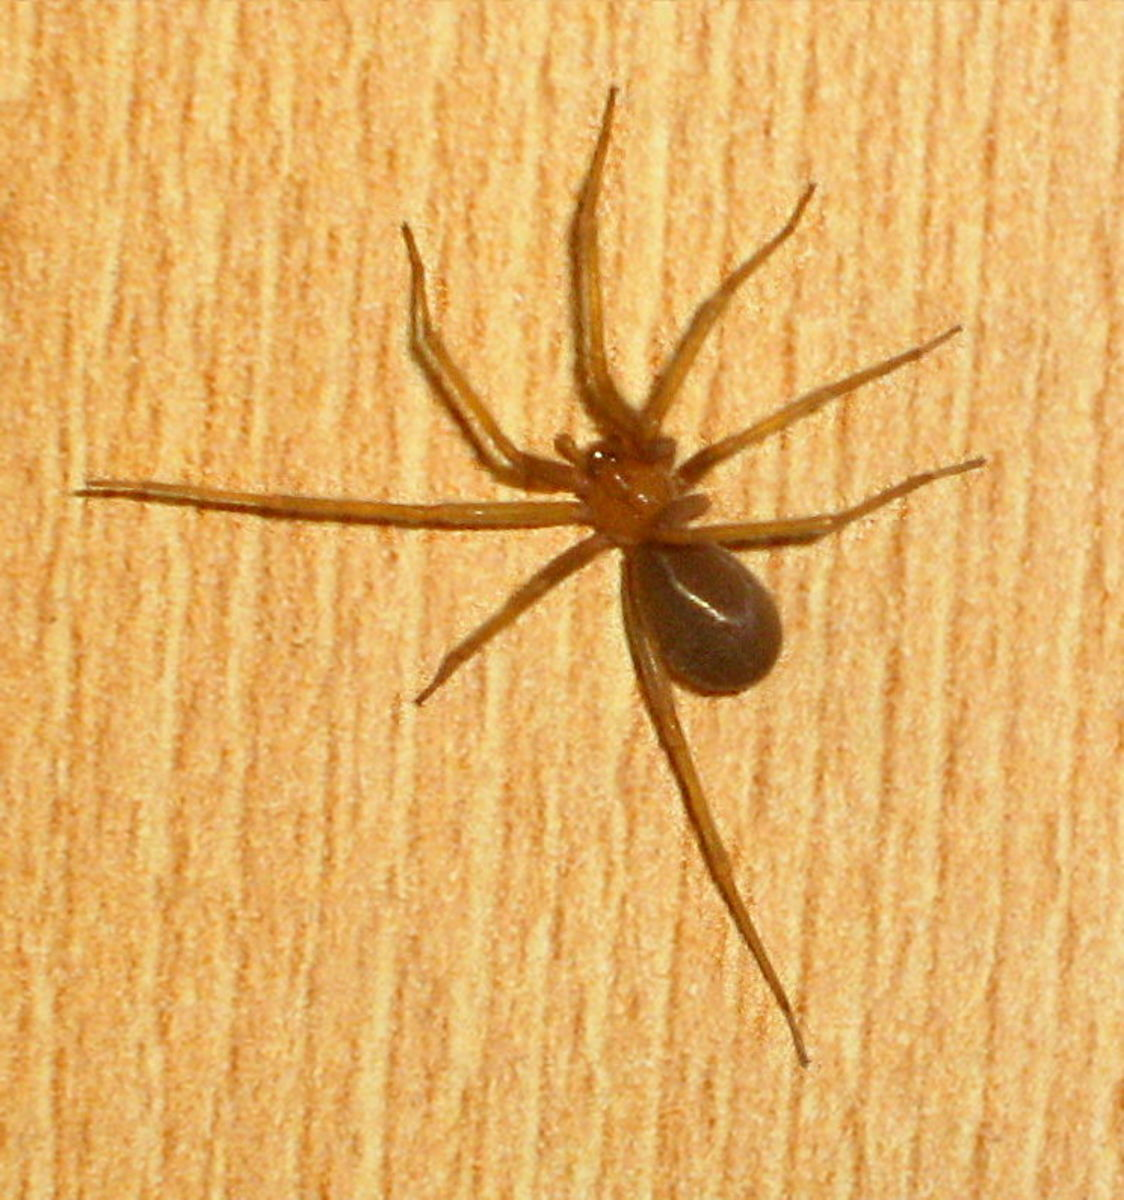 The Chilean recluse is generally considered to be one of the most venomous species of all the recluse spiders.  Although, as its name implies, it is native to South America, it is known to have established itself in the Los Angeles area.